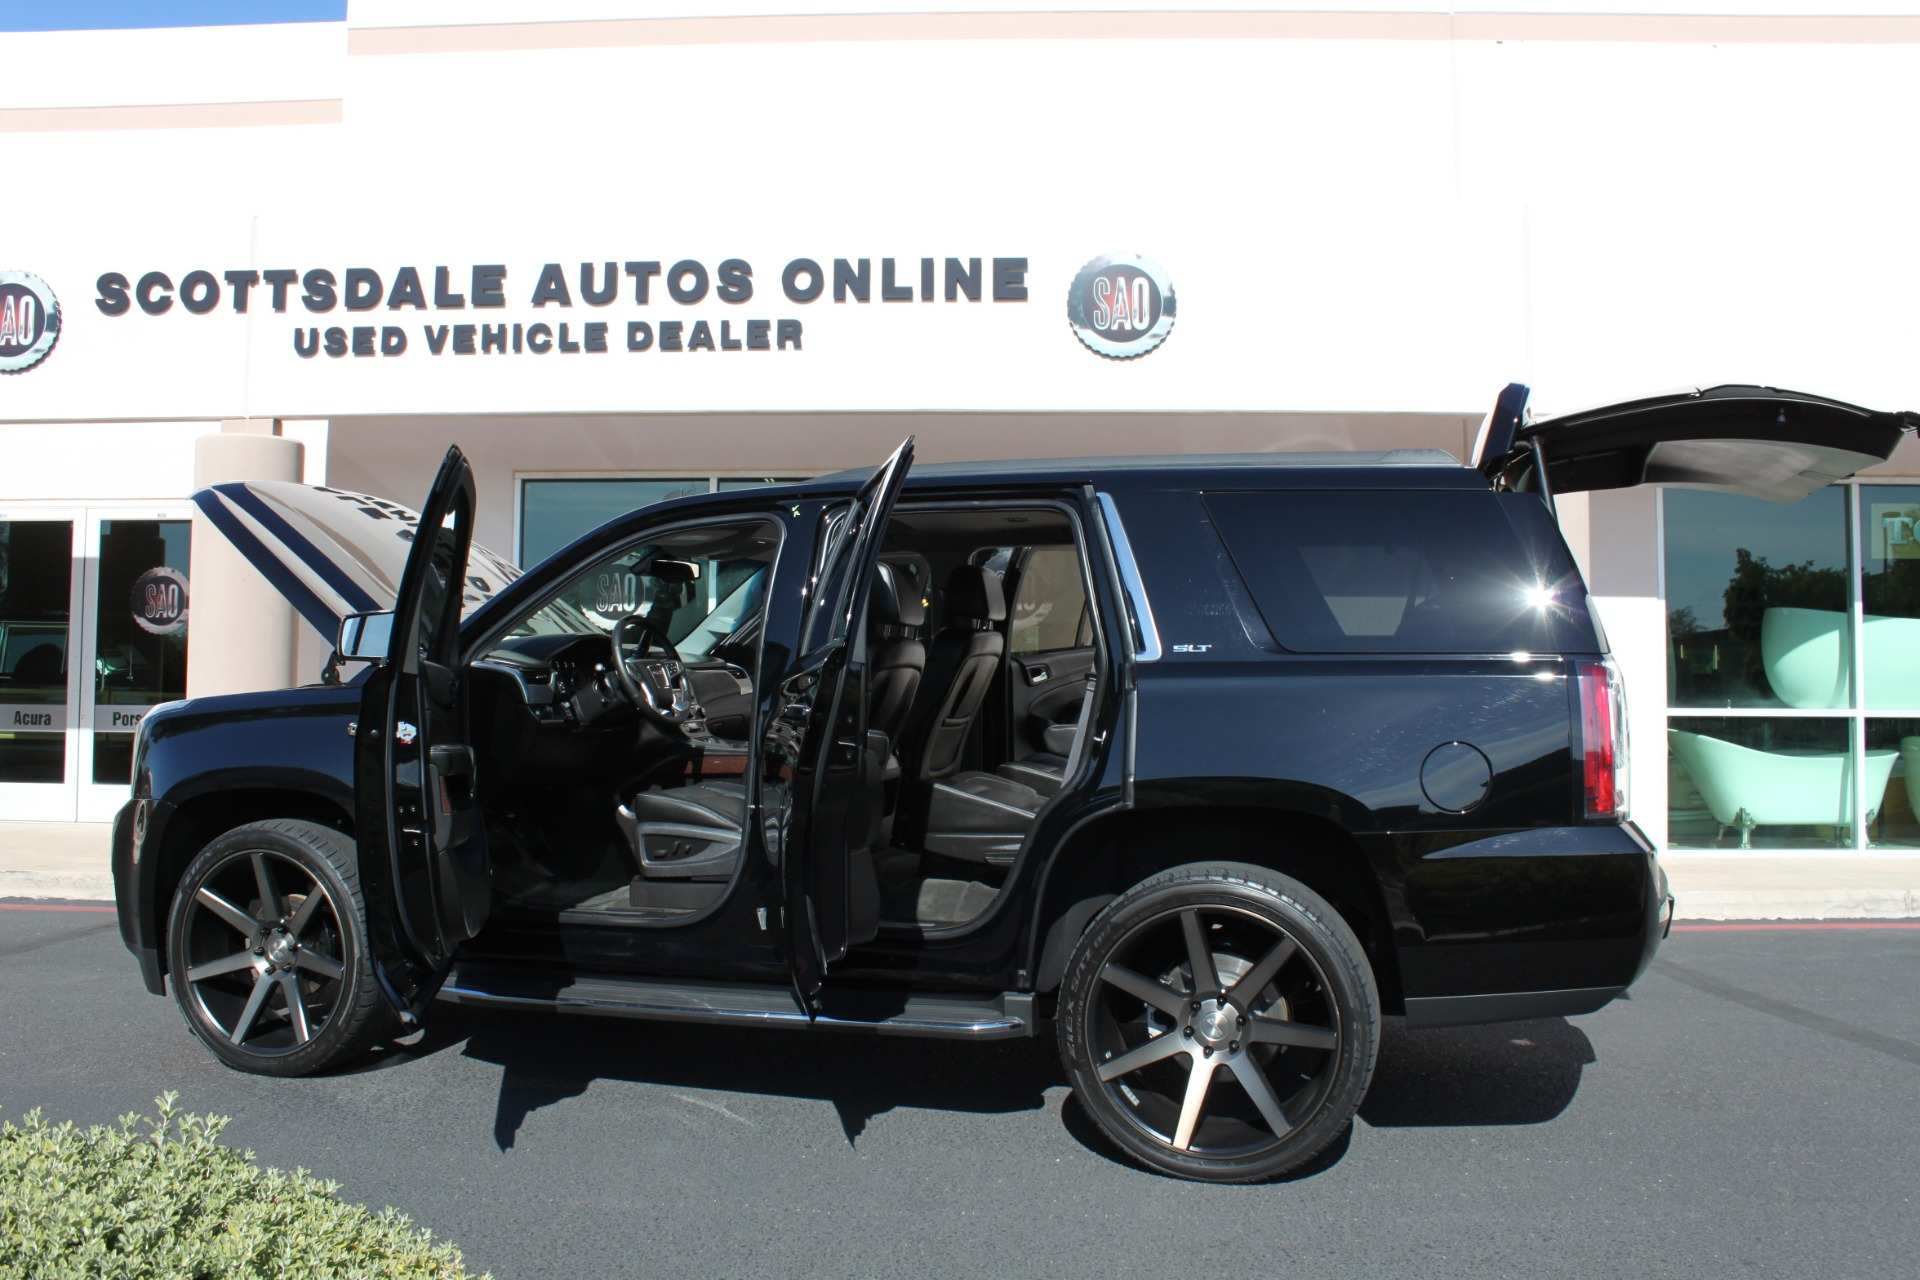 Used-2015-GMC-Yukon-SLT-Ford